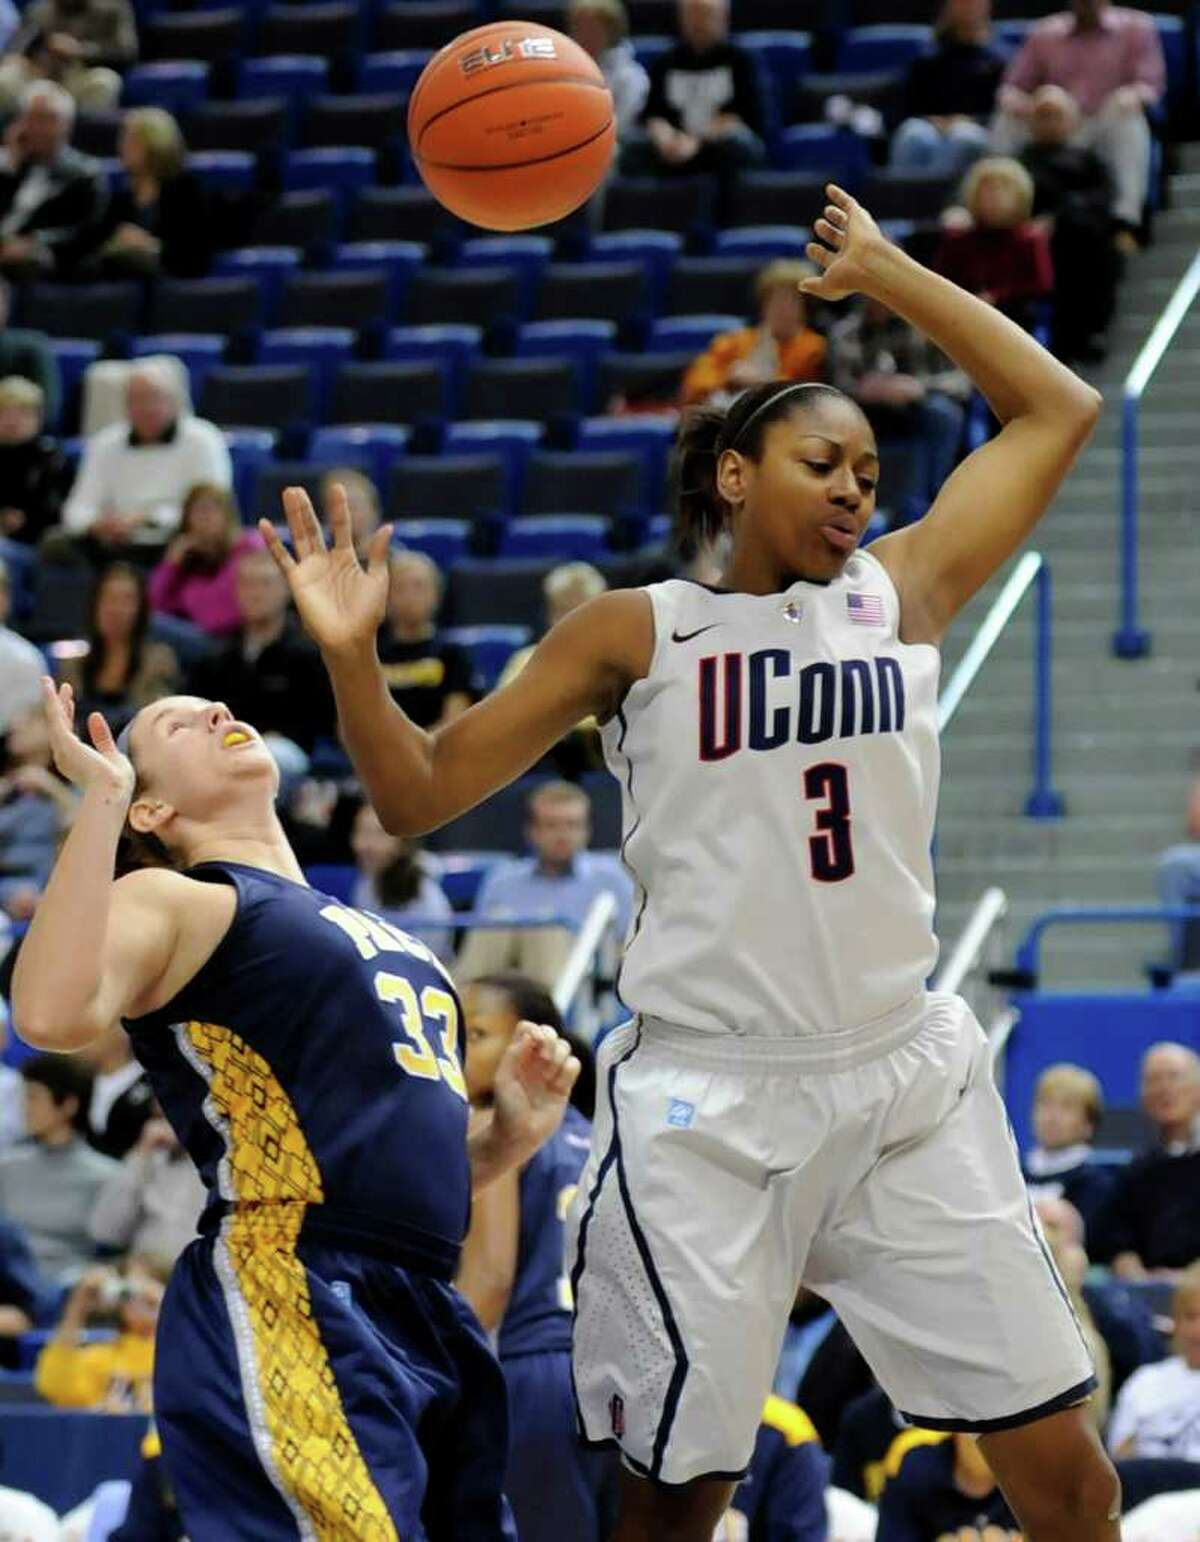 UConn's Tiffany Hayes and Pace's Kerri White, left, battle for a rebound in the first half of an exhibition game Wednesday in Hartford.